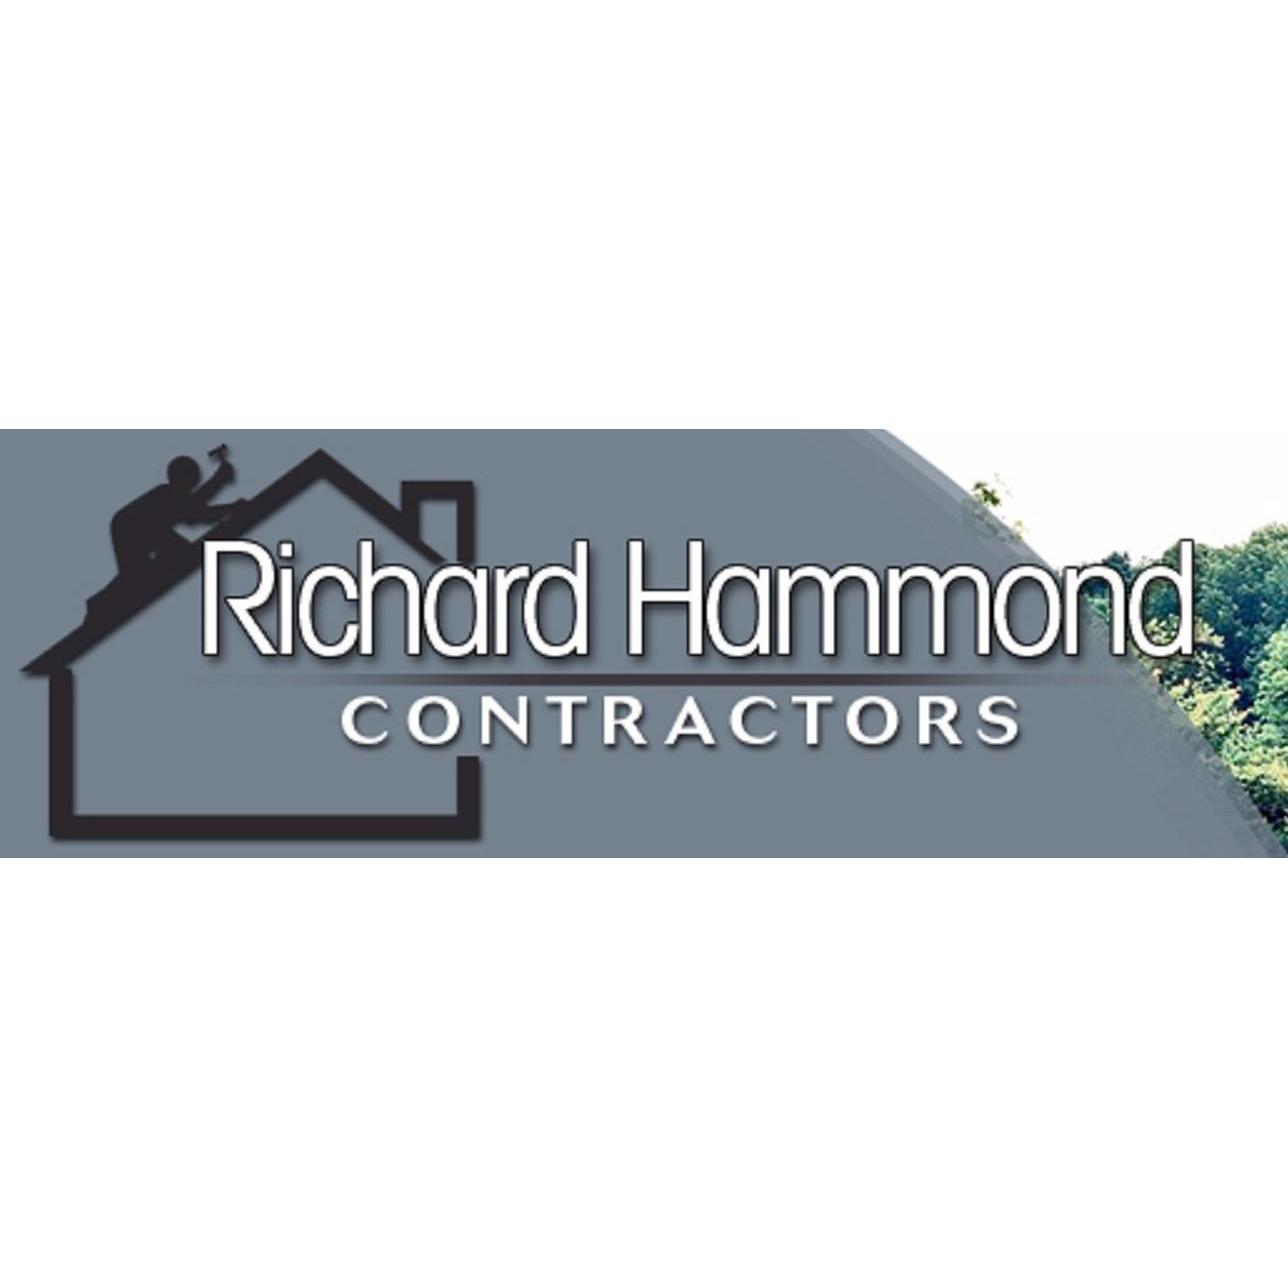 Richard Hammond Contractors